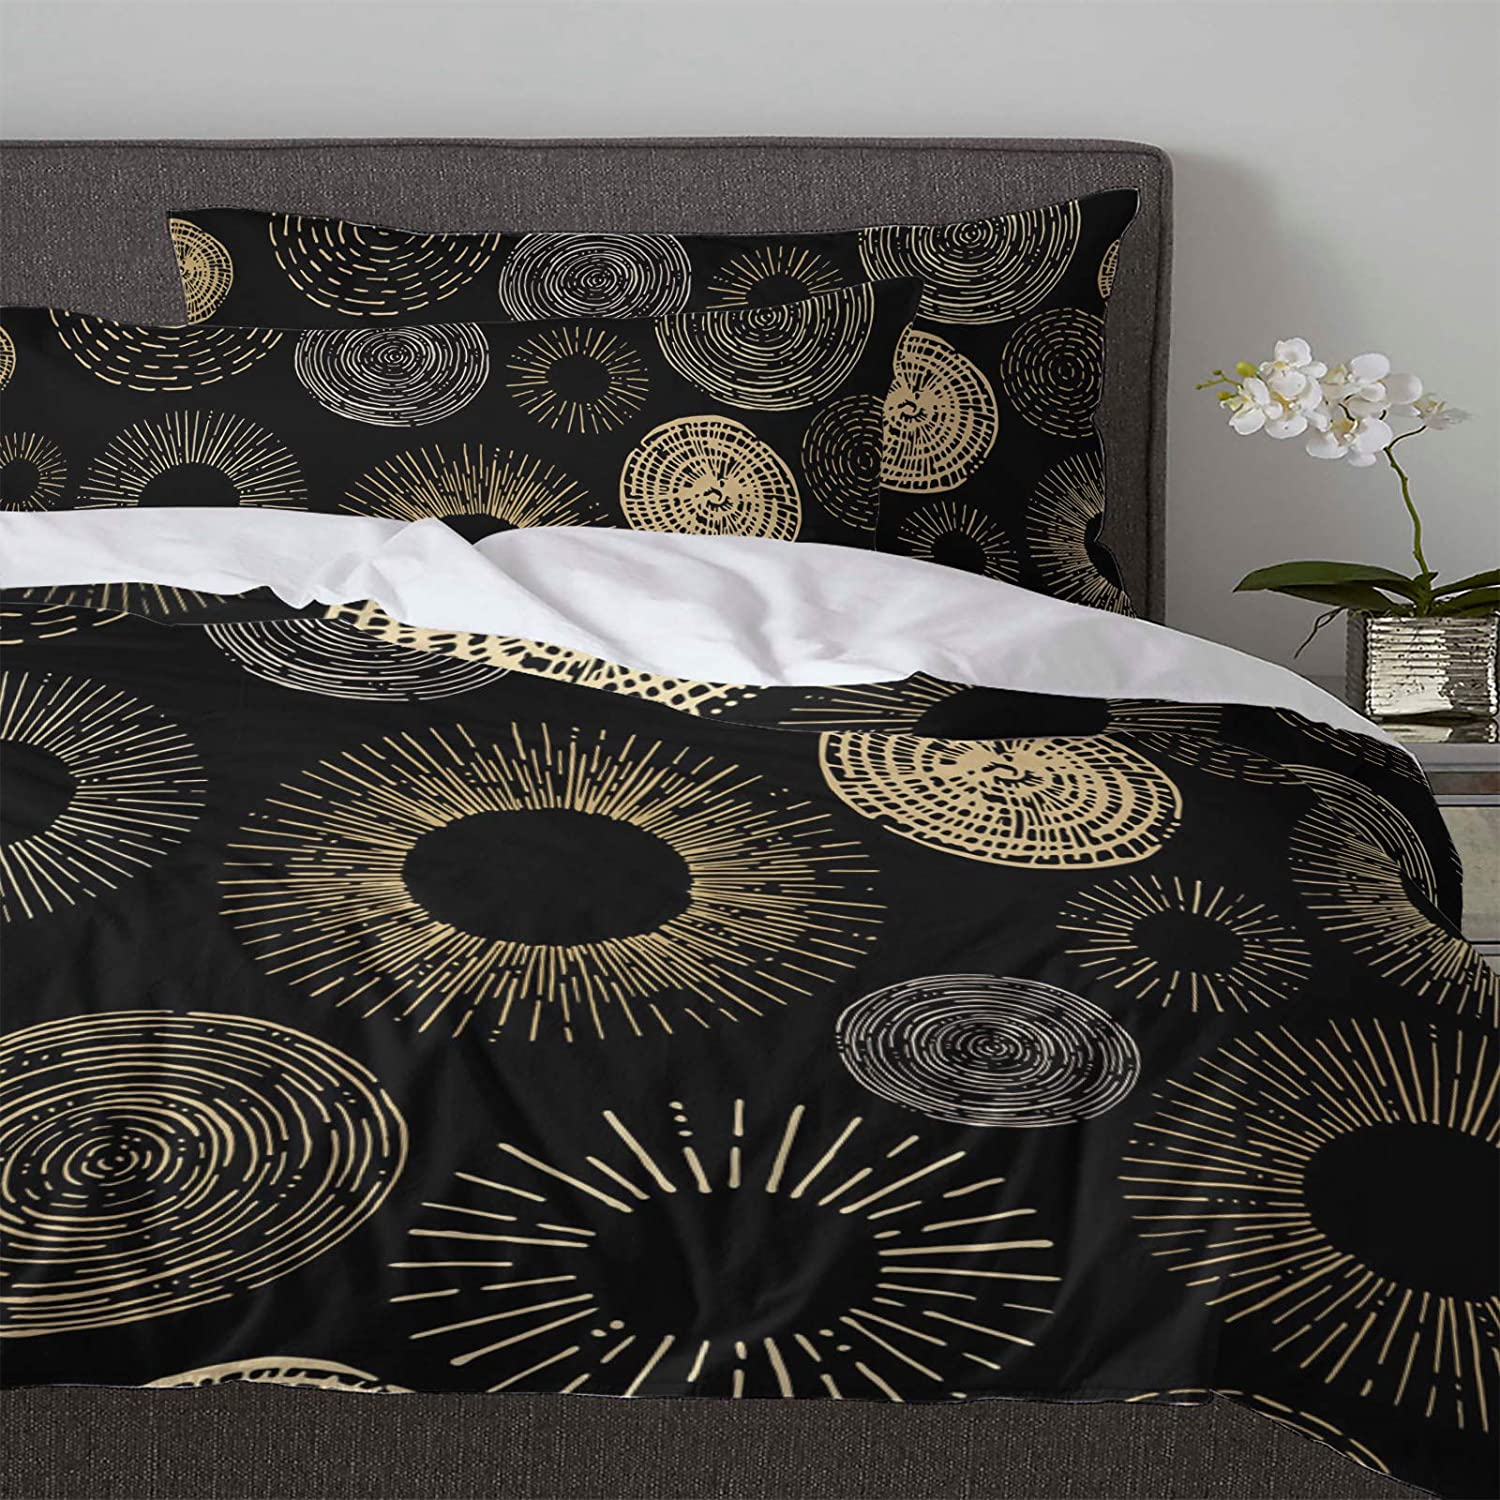 California King Size 3 Pcs Duvet Cover Sets Circle Shining Firework 1 Bedspread 2 Pillow Cases Geometric Texture Lightweight Comforter Cover Set Bedding Decoration for Kids Childrens Adults